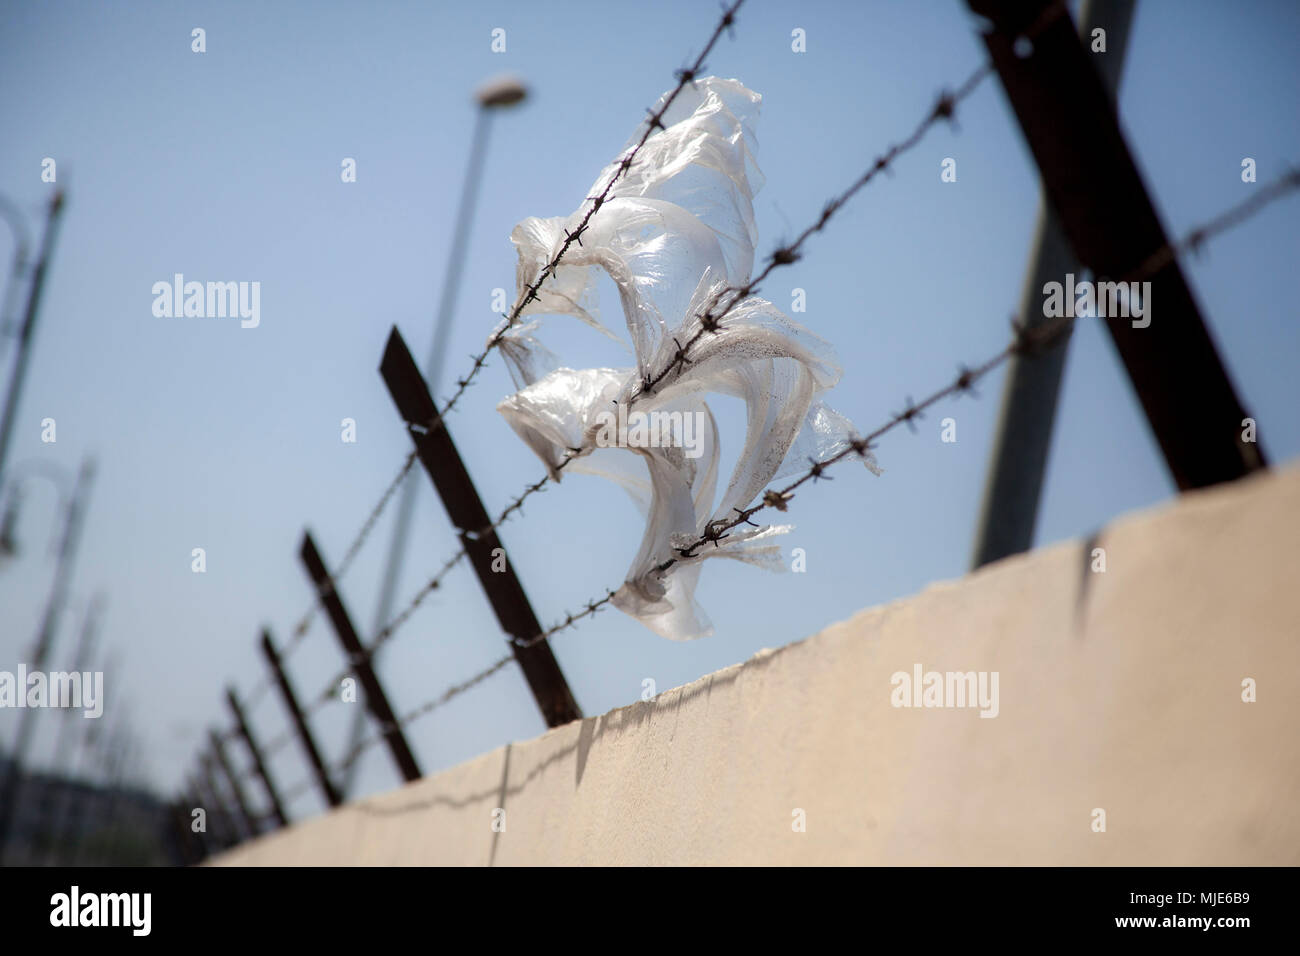 Morocco, Tangier, barbed wire fence, plastic sheet, detail, - Stock Image